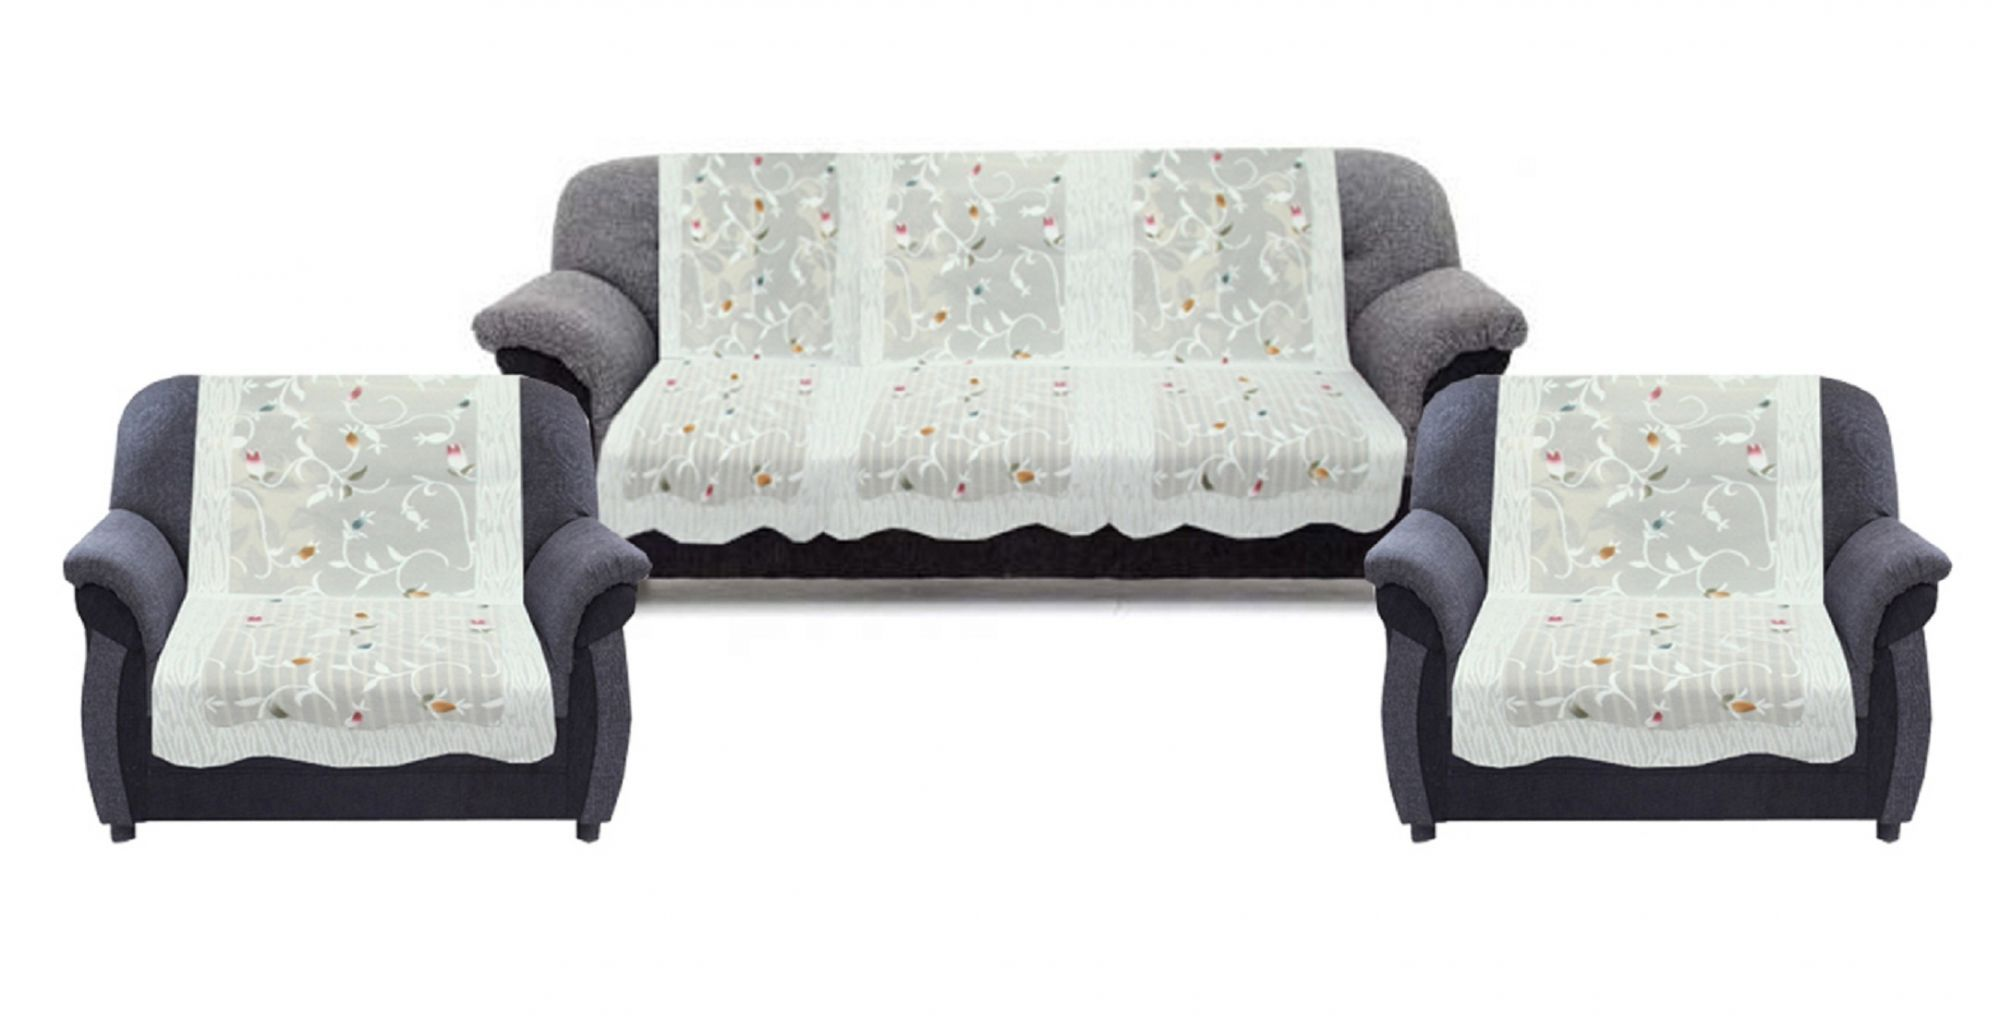 Surprising Kuber Industries 6 Pieces White Leaf Design Sofa And Chair Pabps2019 Chair Design Images Pabps2019Com